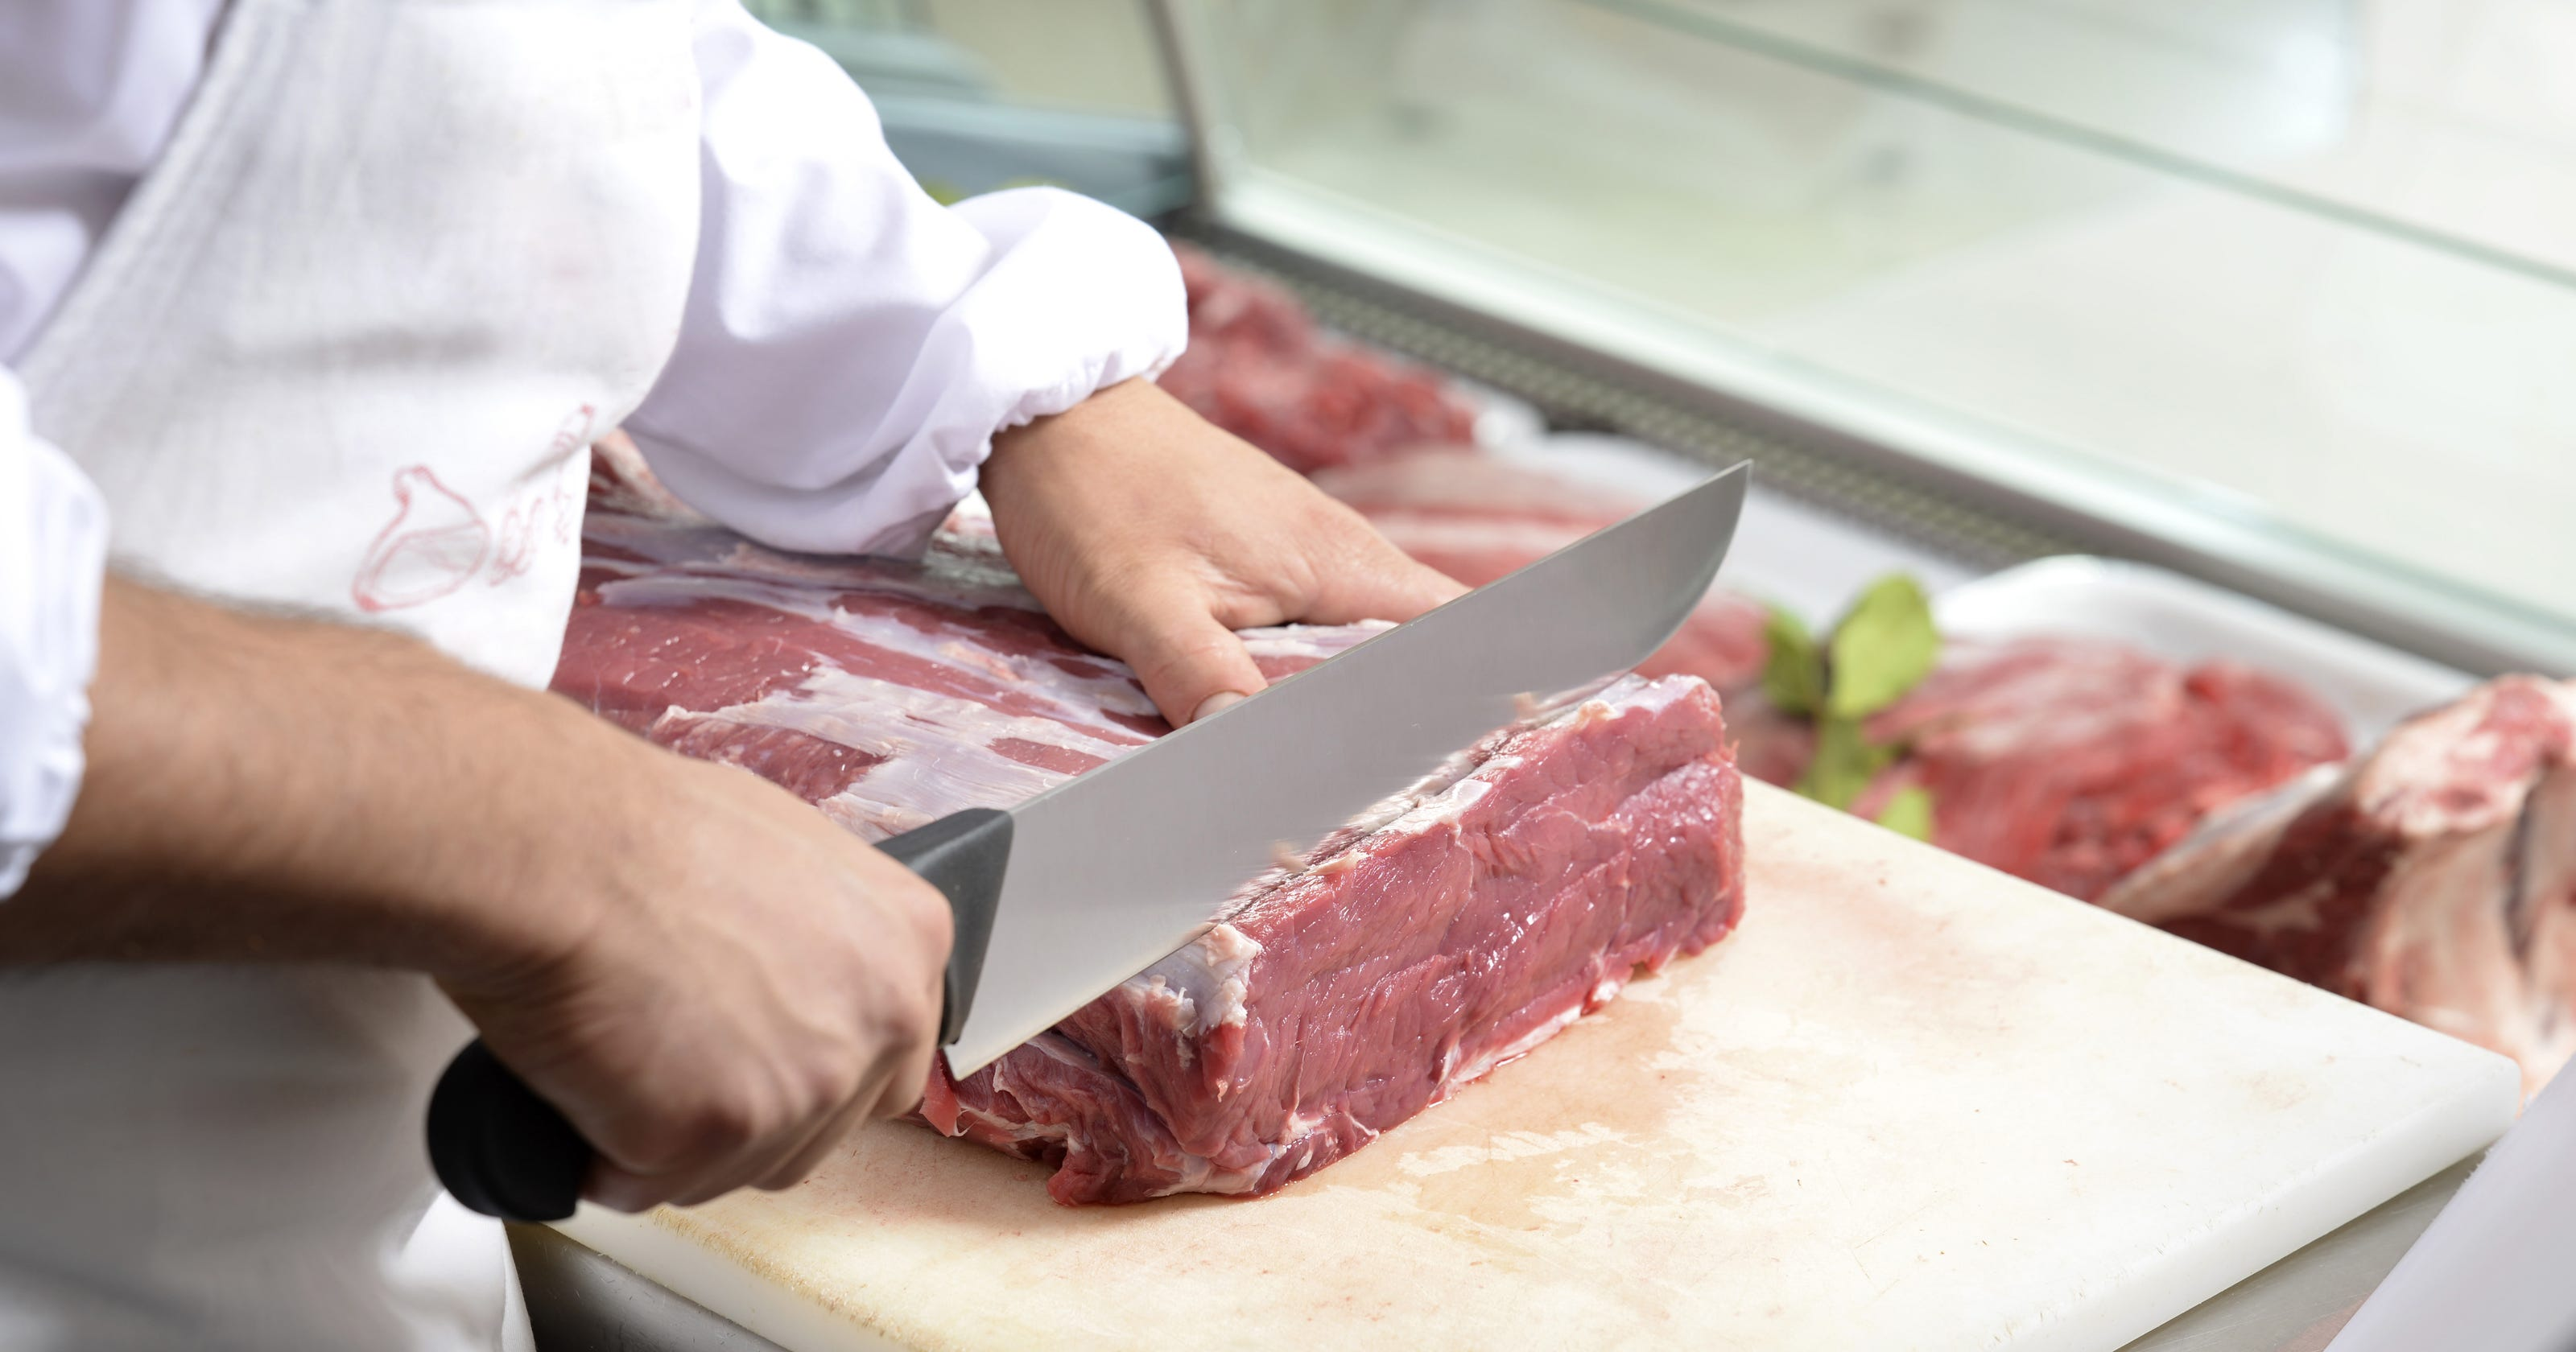 Publix Butcher Claims Retaliation For Reporting Fda Violations